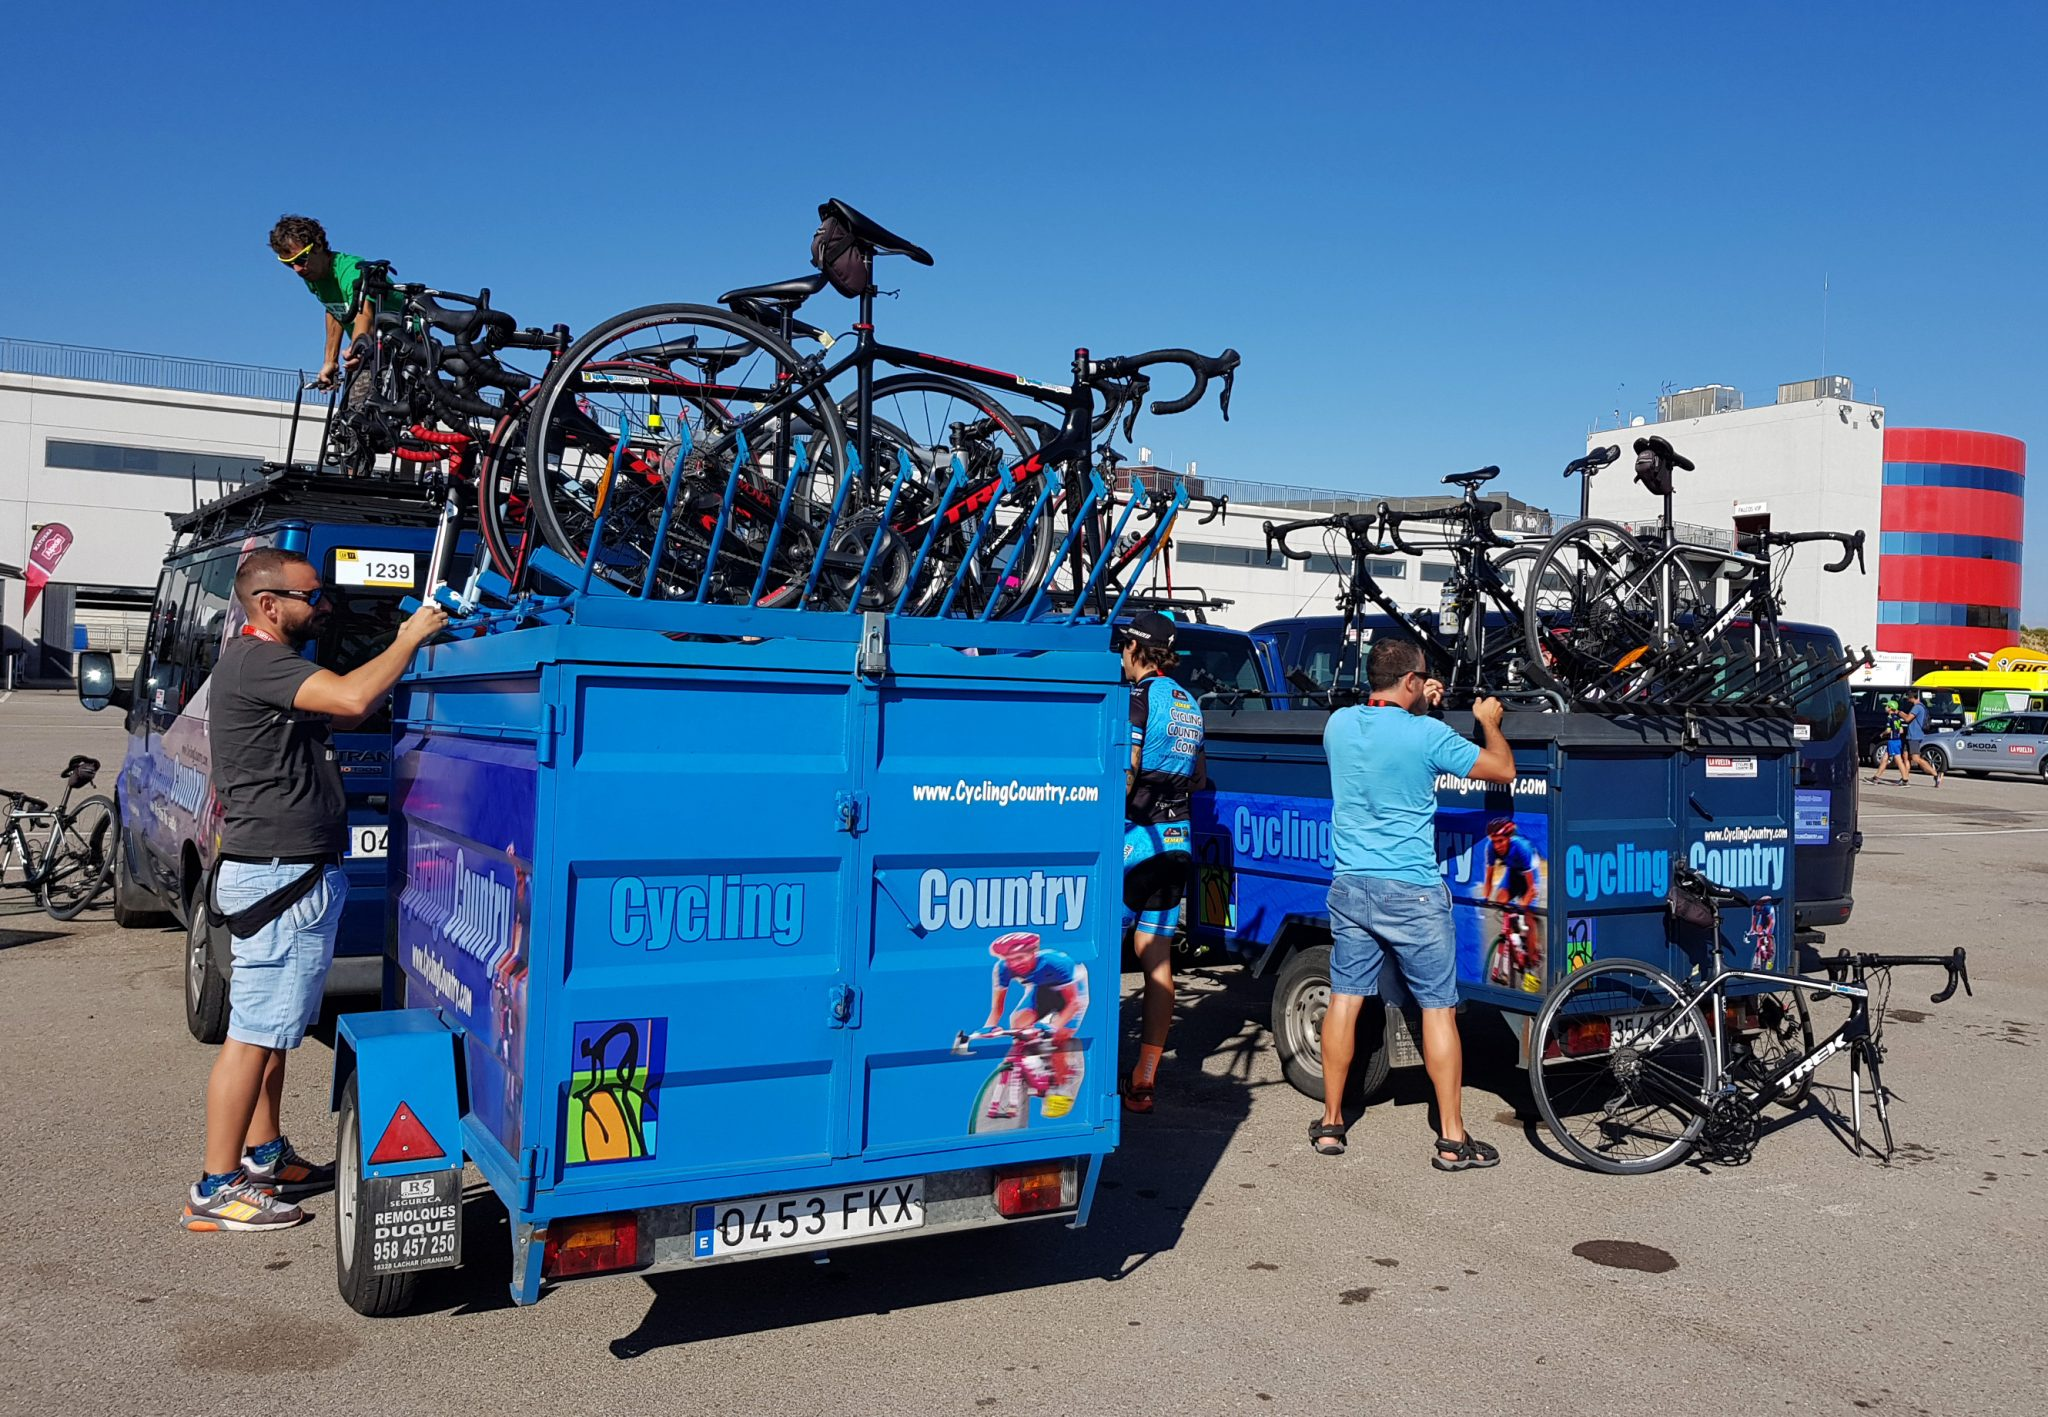 CyclingCountryVans_BikeinSpain (12)